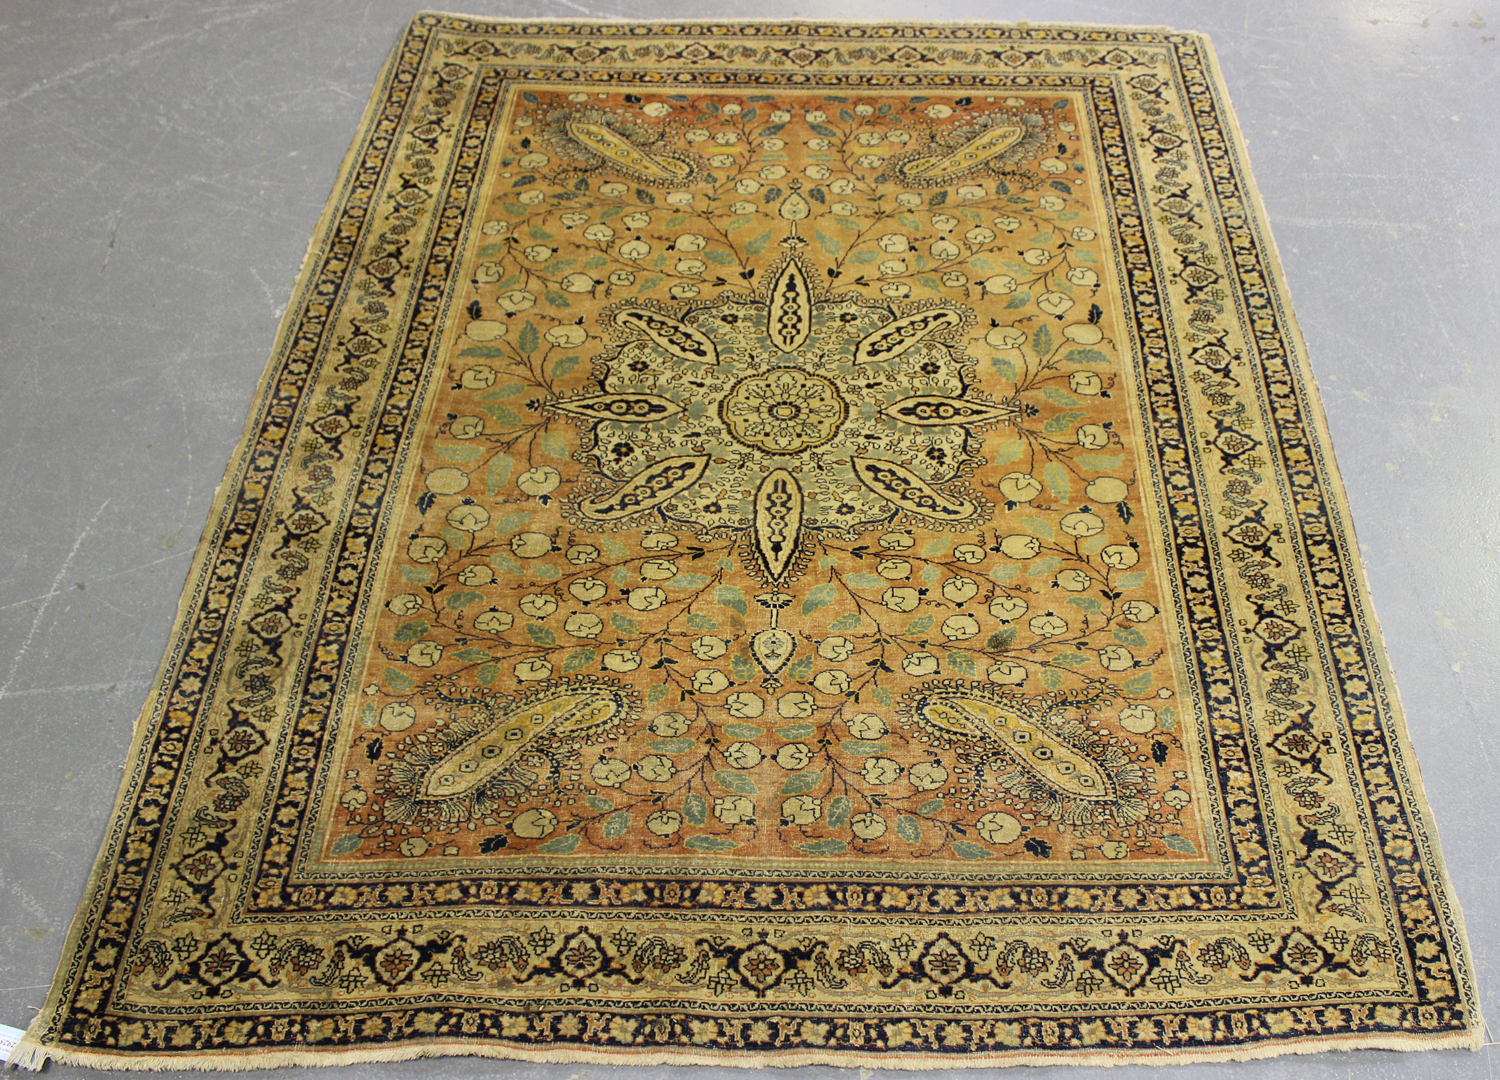 Lot 2925 - A Doroksh rug, Central Persia, early 20th century, the pale chestnut field with a boteh decorated